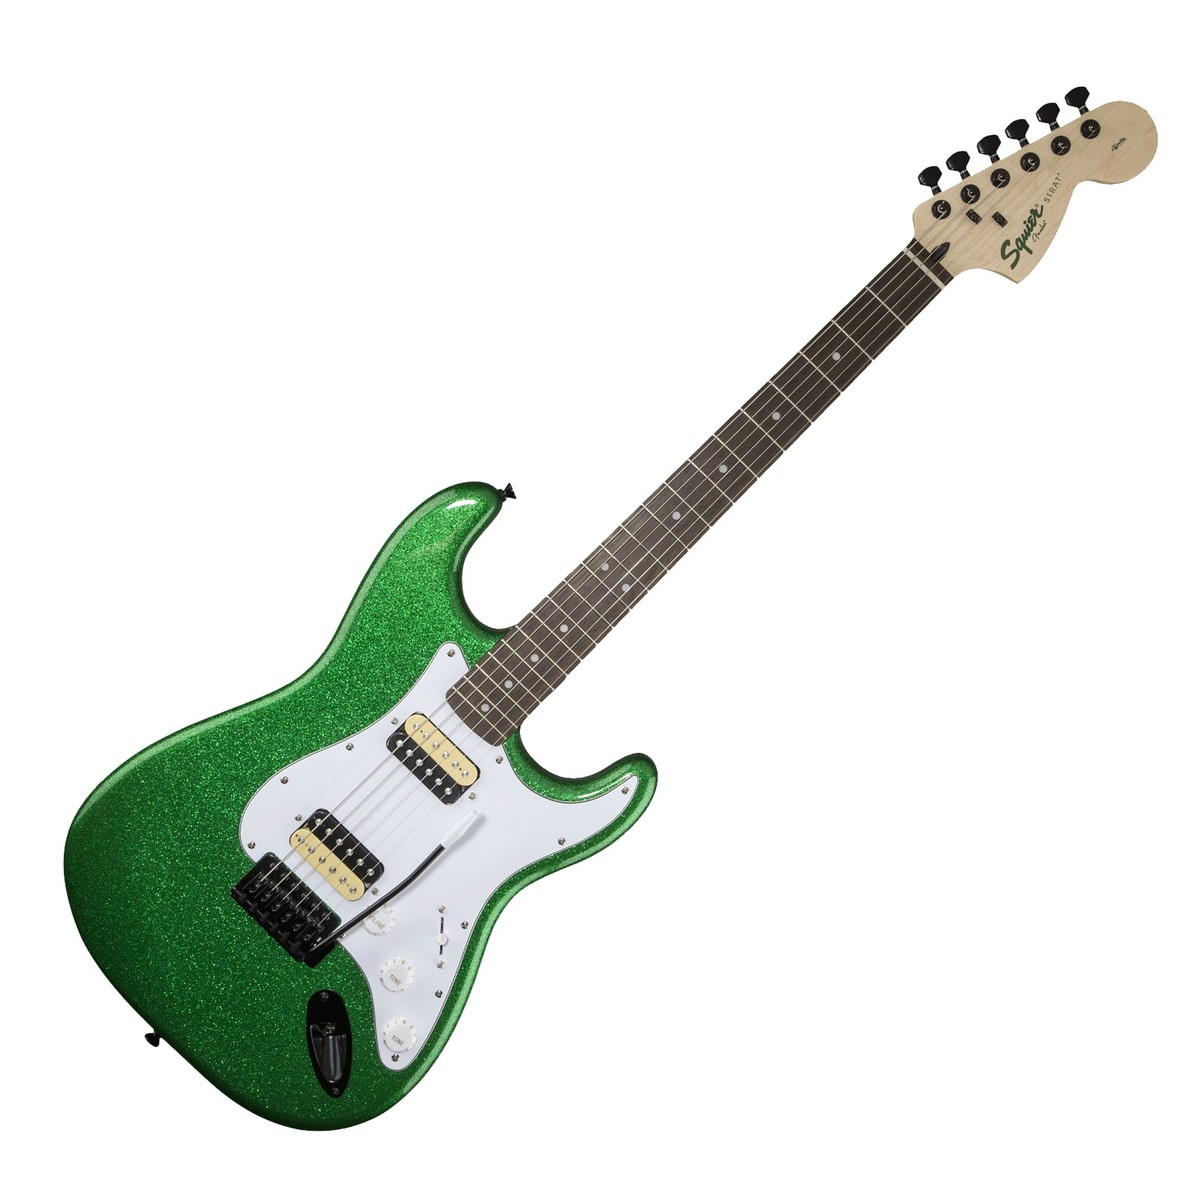 squier by fender fsr affinity stratocaster hh candy green sparkle b stock at gear4music. Black Bedroom Furniture Sets. Home Design Ideas